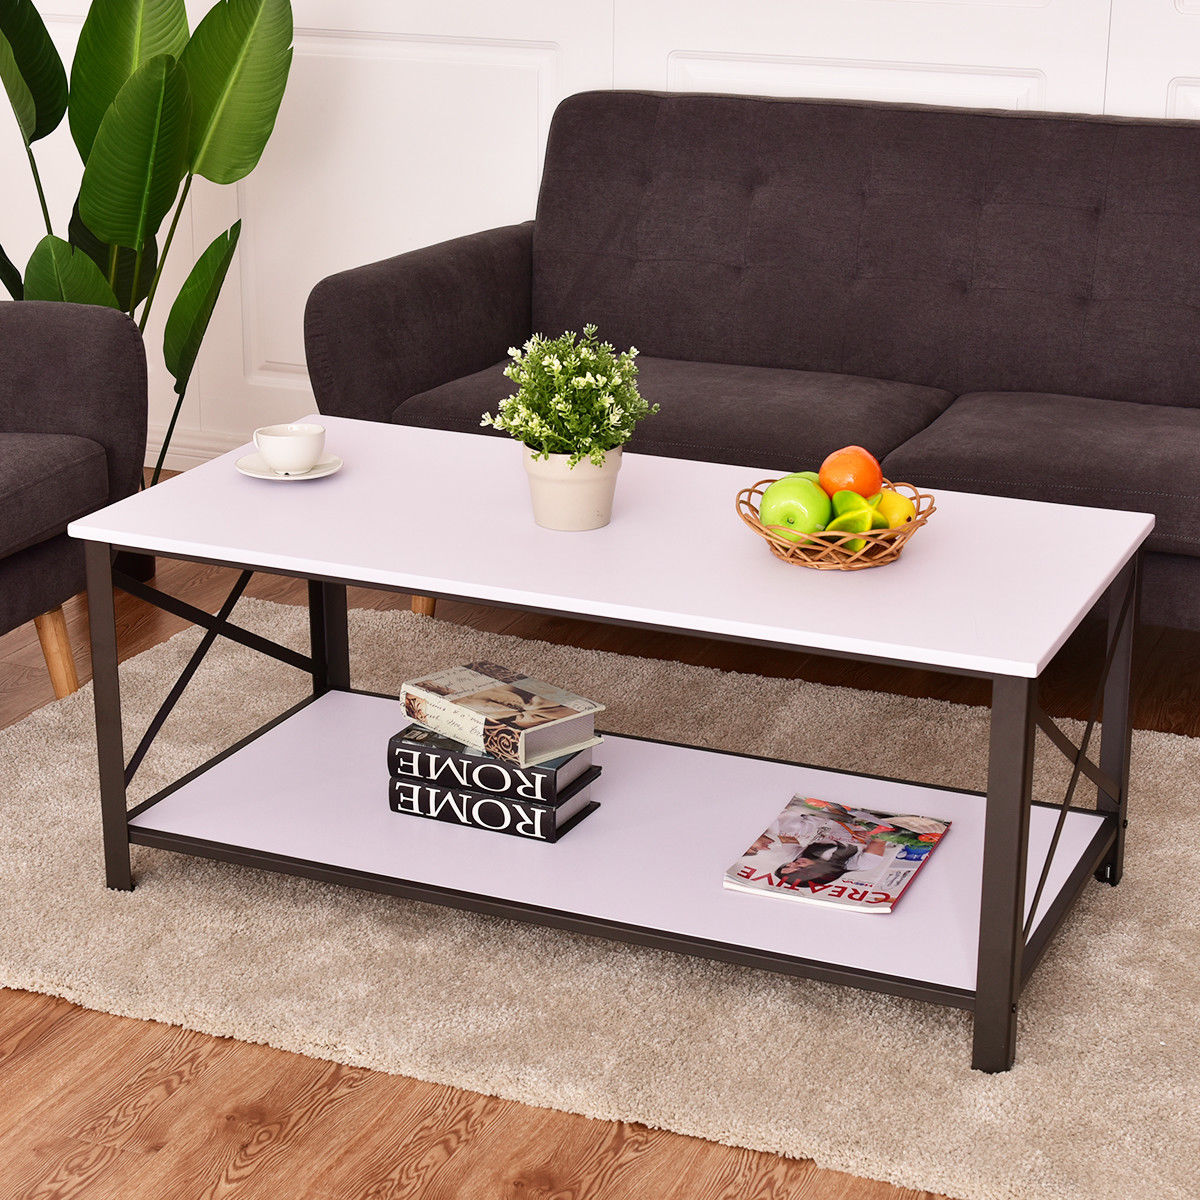 giantex wood coffee table cocktail side accent metal frame with storage shelf white living room tables furniture owings target beer cooler chair end coral lamp pier one vanity